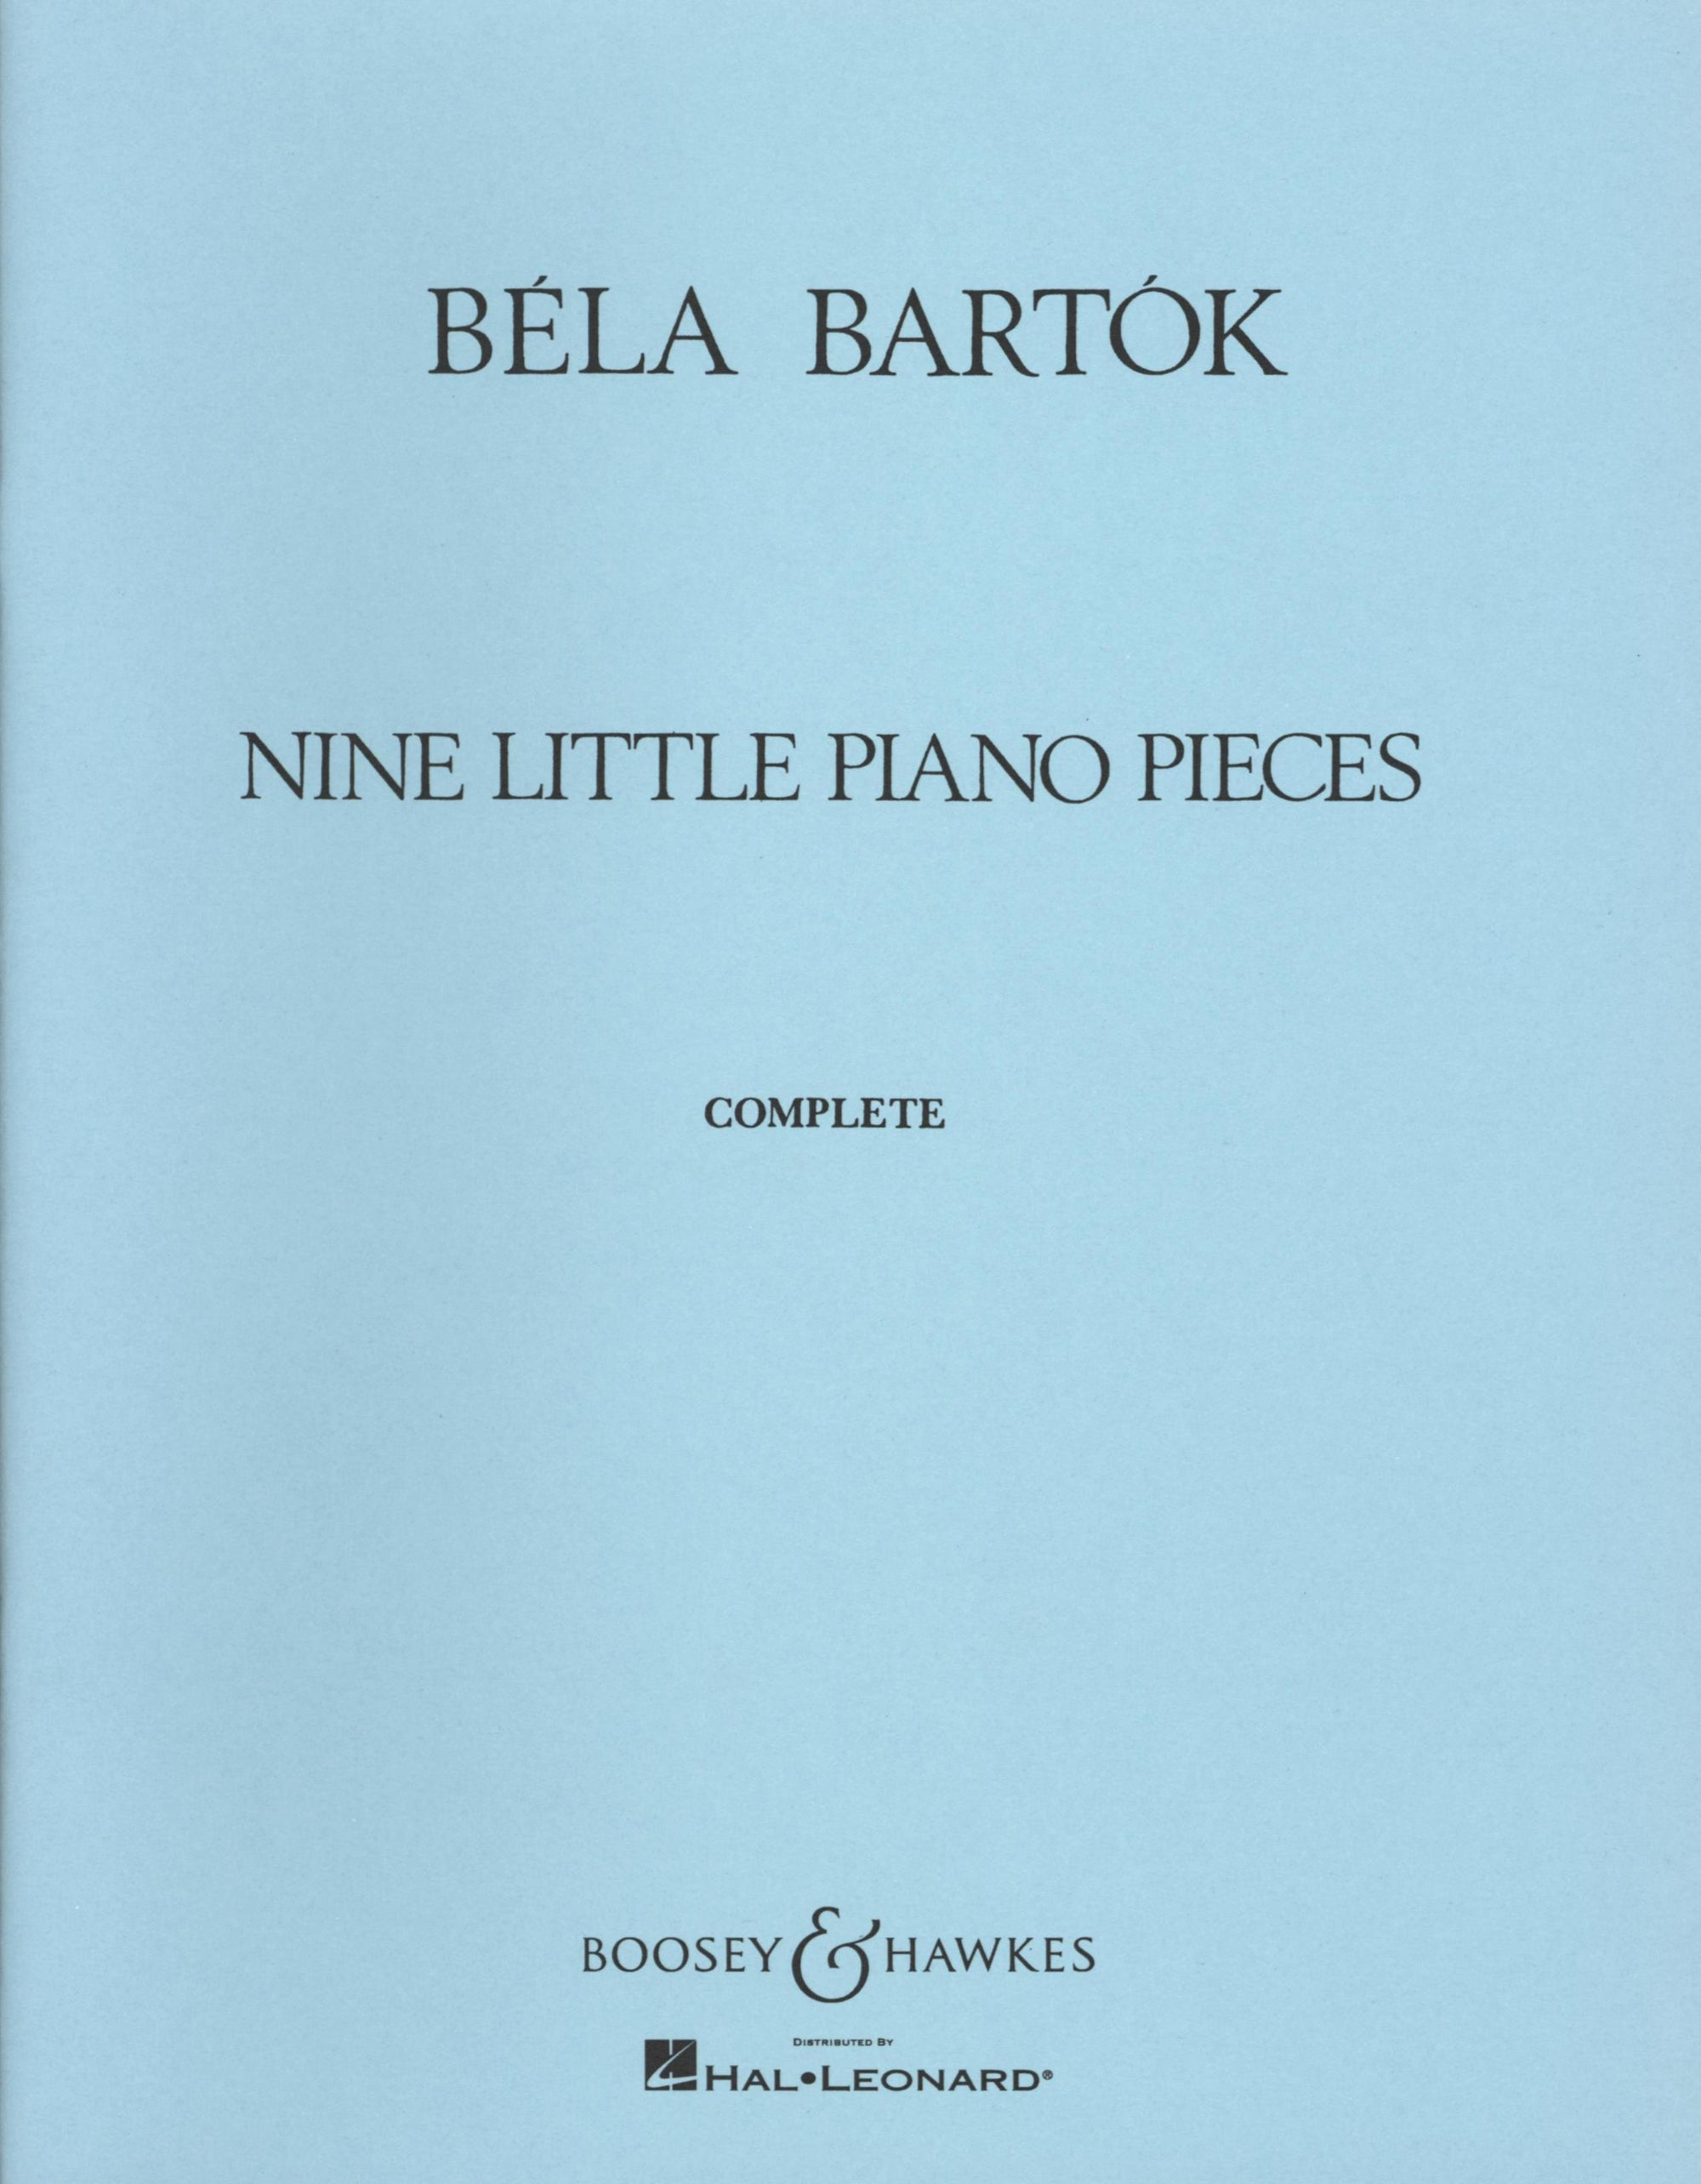 Bartók: 9 Little Piano Pieces